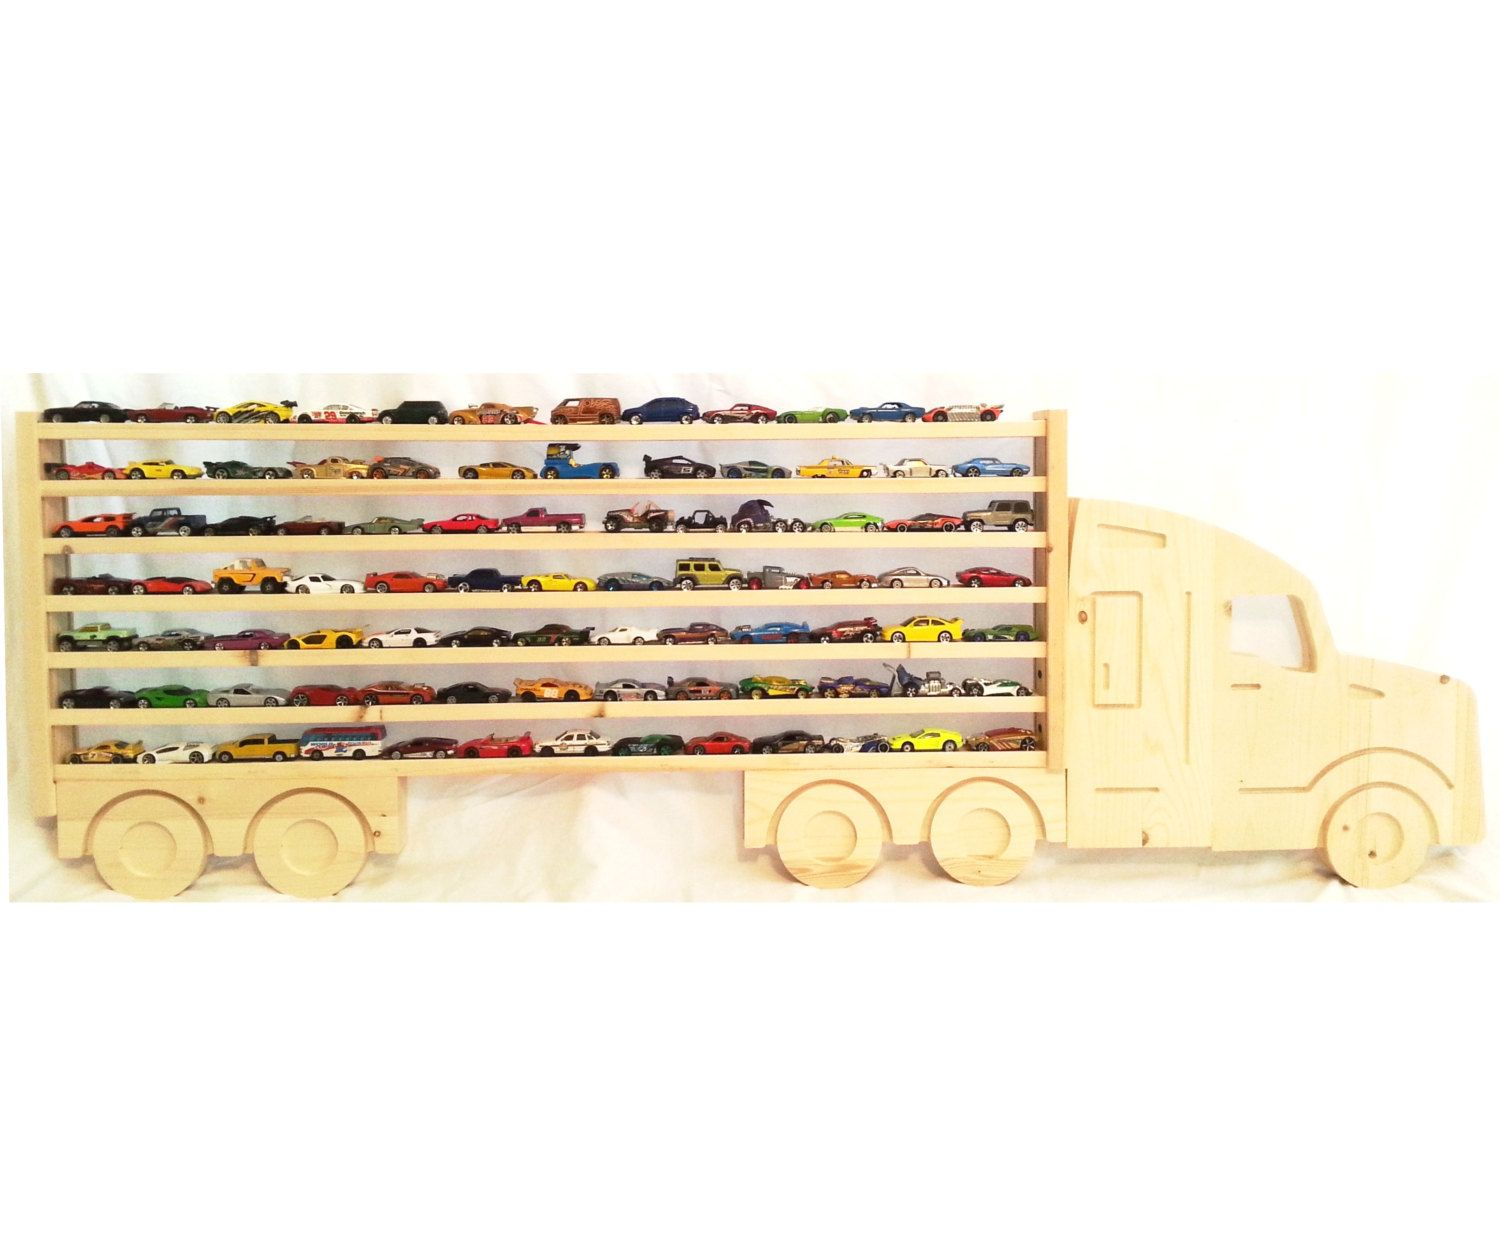 Painted Large Wooden Semi Truck Hanging Storage Display Shelf For Hot Wheelatchbox Cars Nearly 5 Feet Long